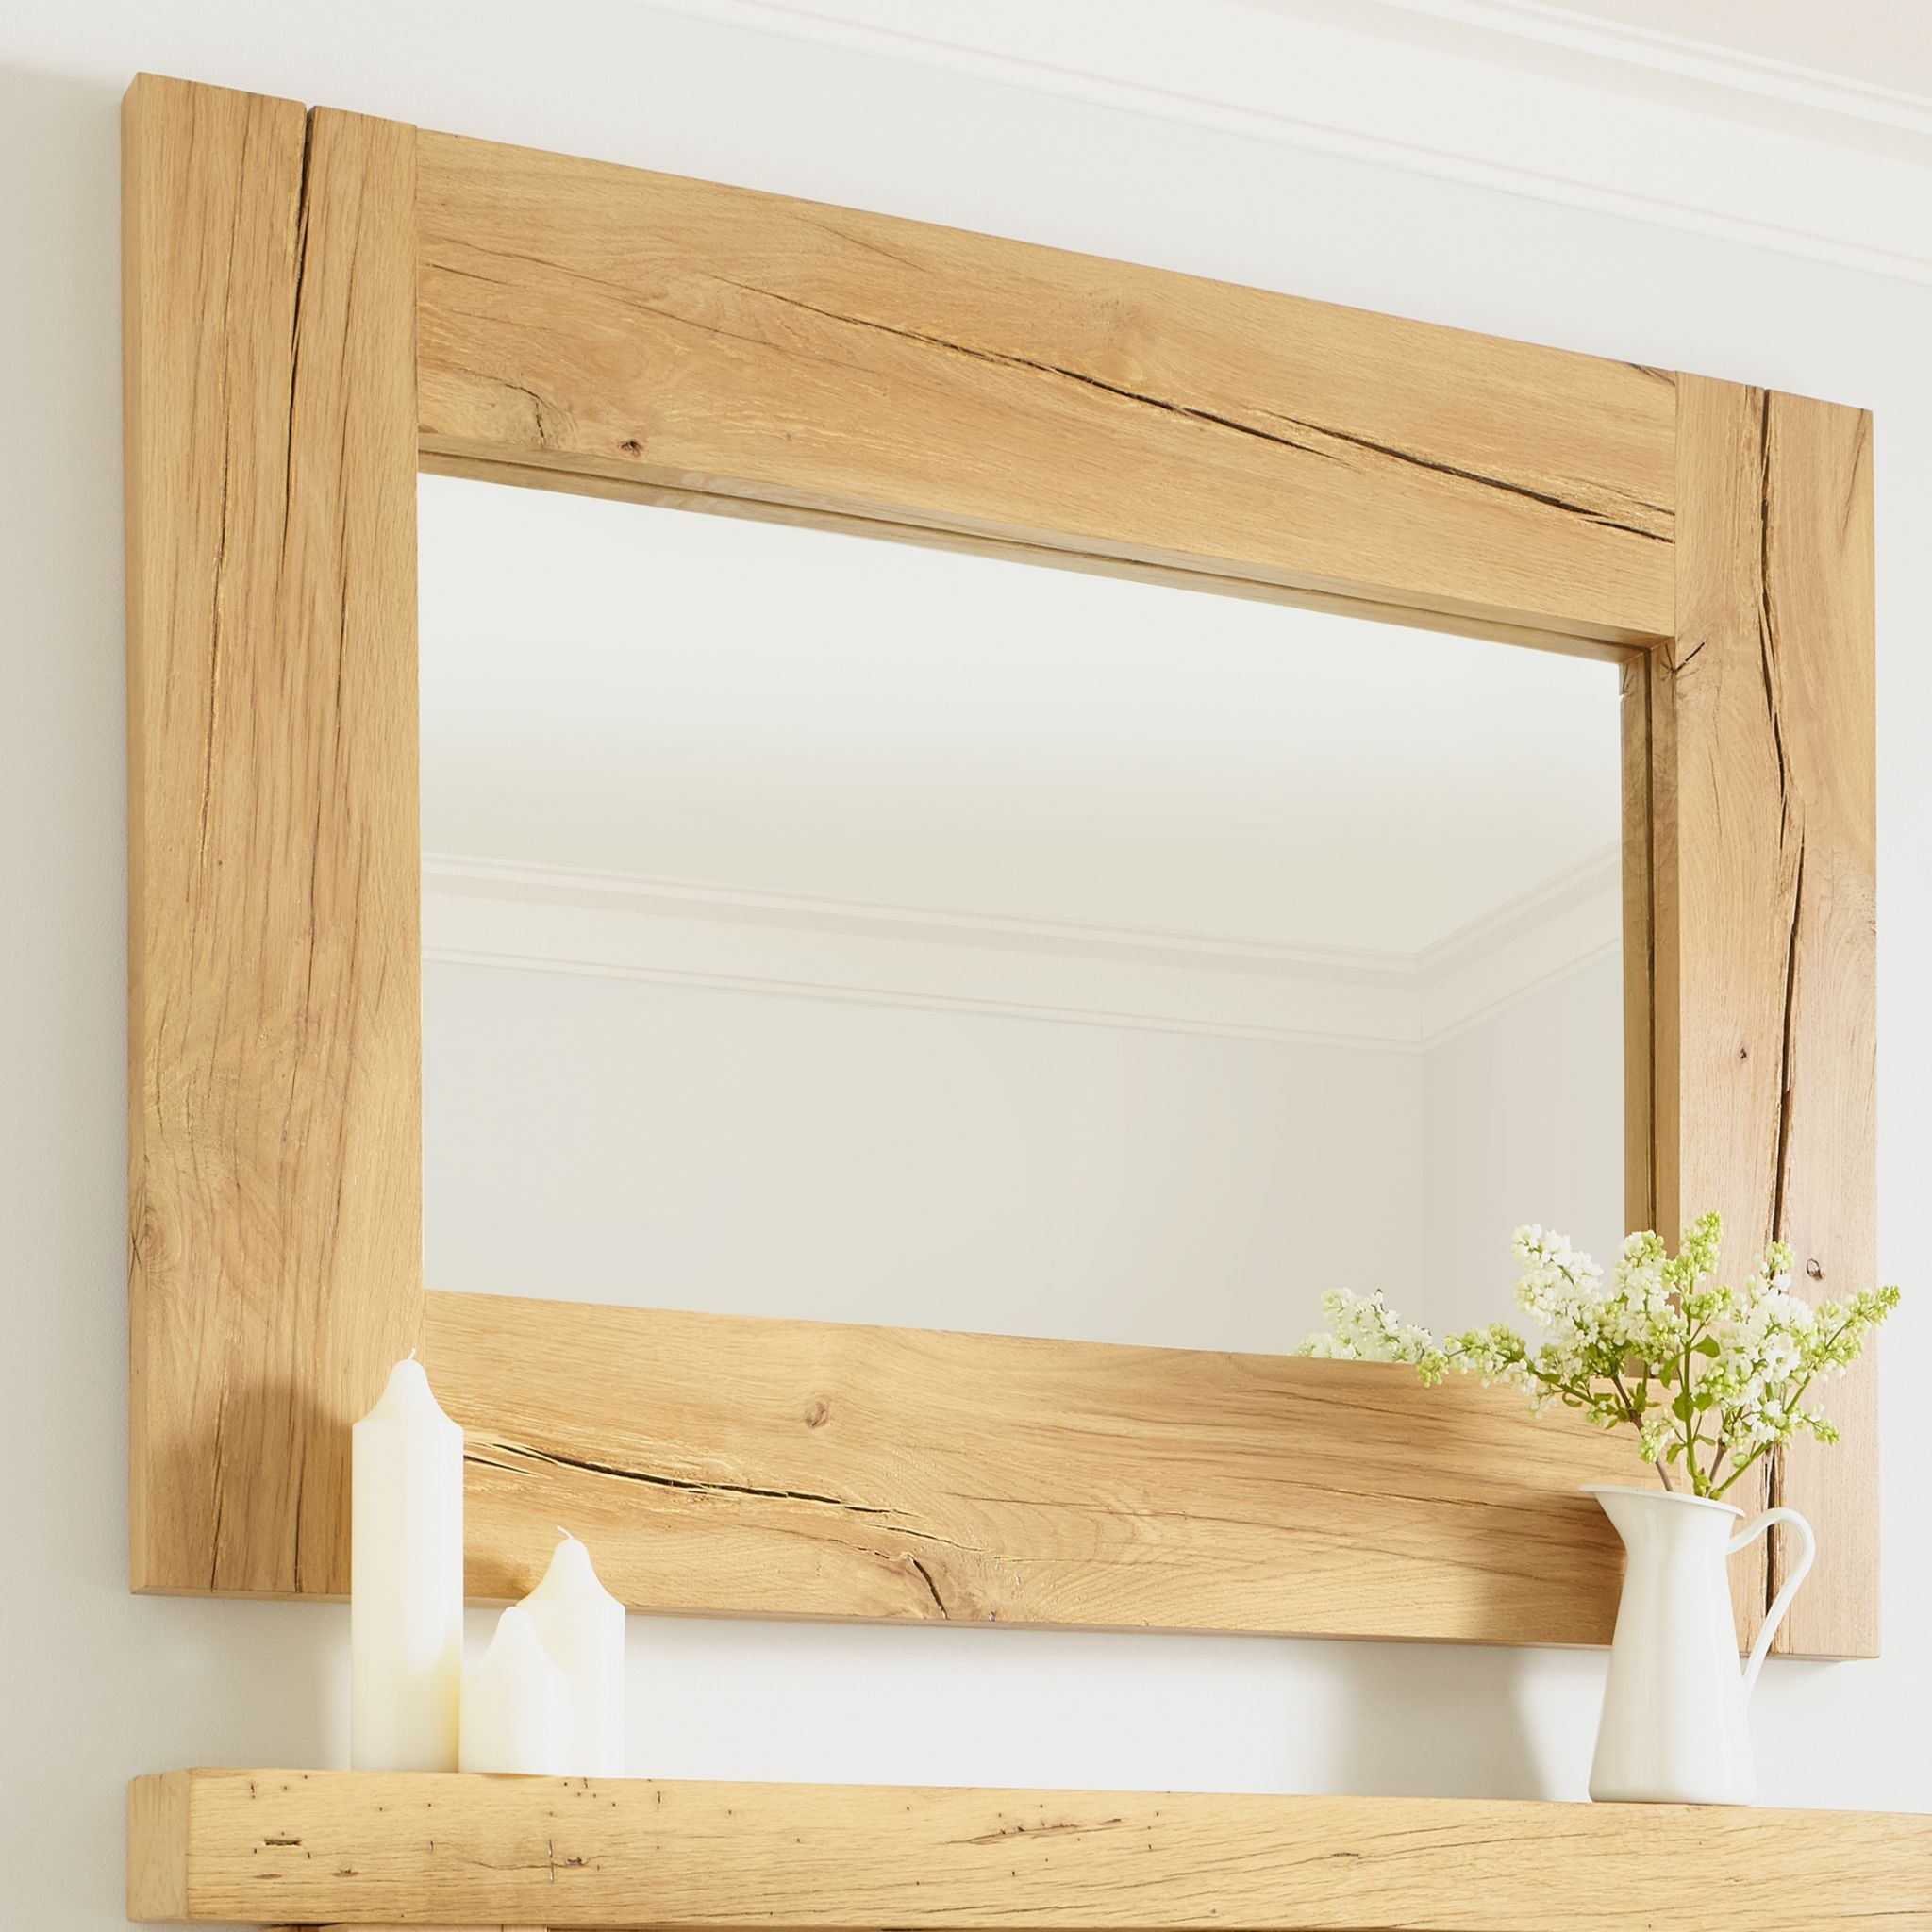 Oak Mirror Oxford Solid French Rustic Beam Regarding Rustic Oak Mirror (Image 8 of 15)